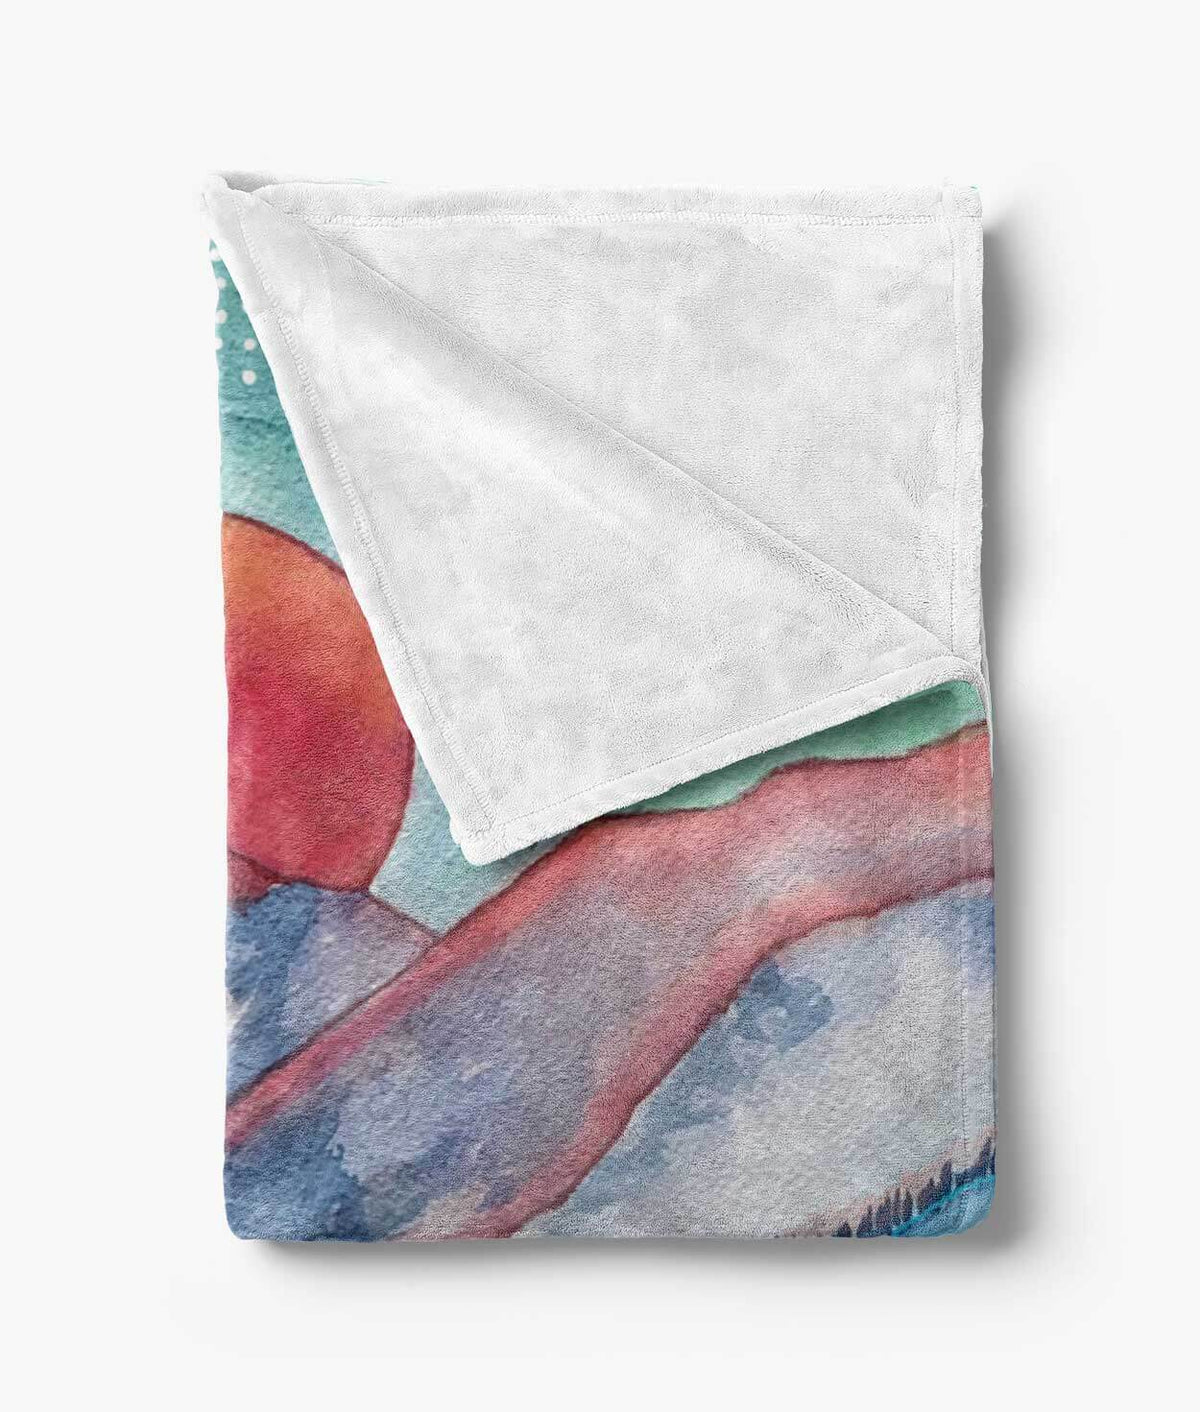 Gore Range Blanket | Fleece Minky Throw Blanket